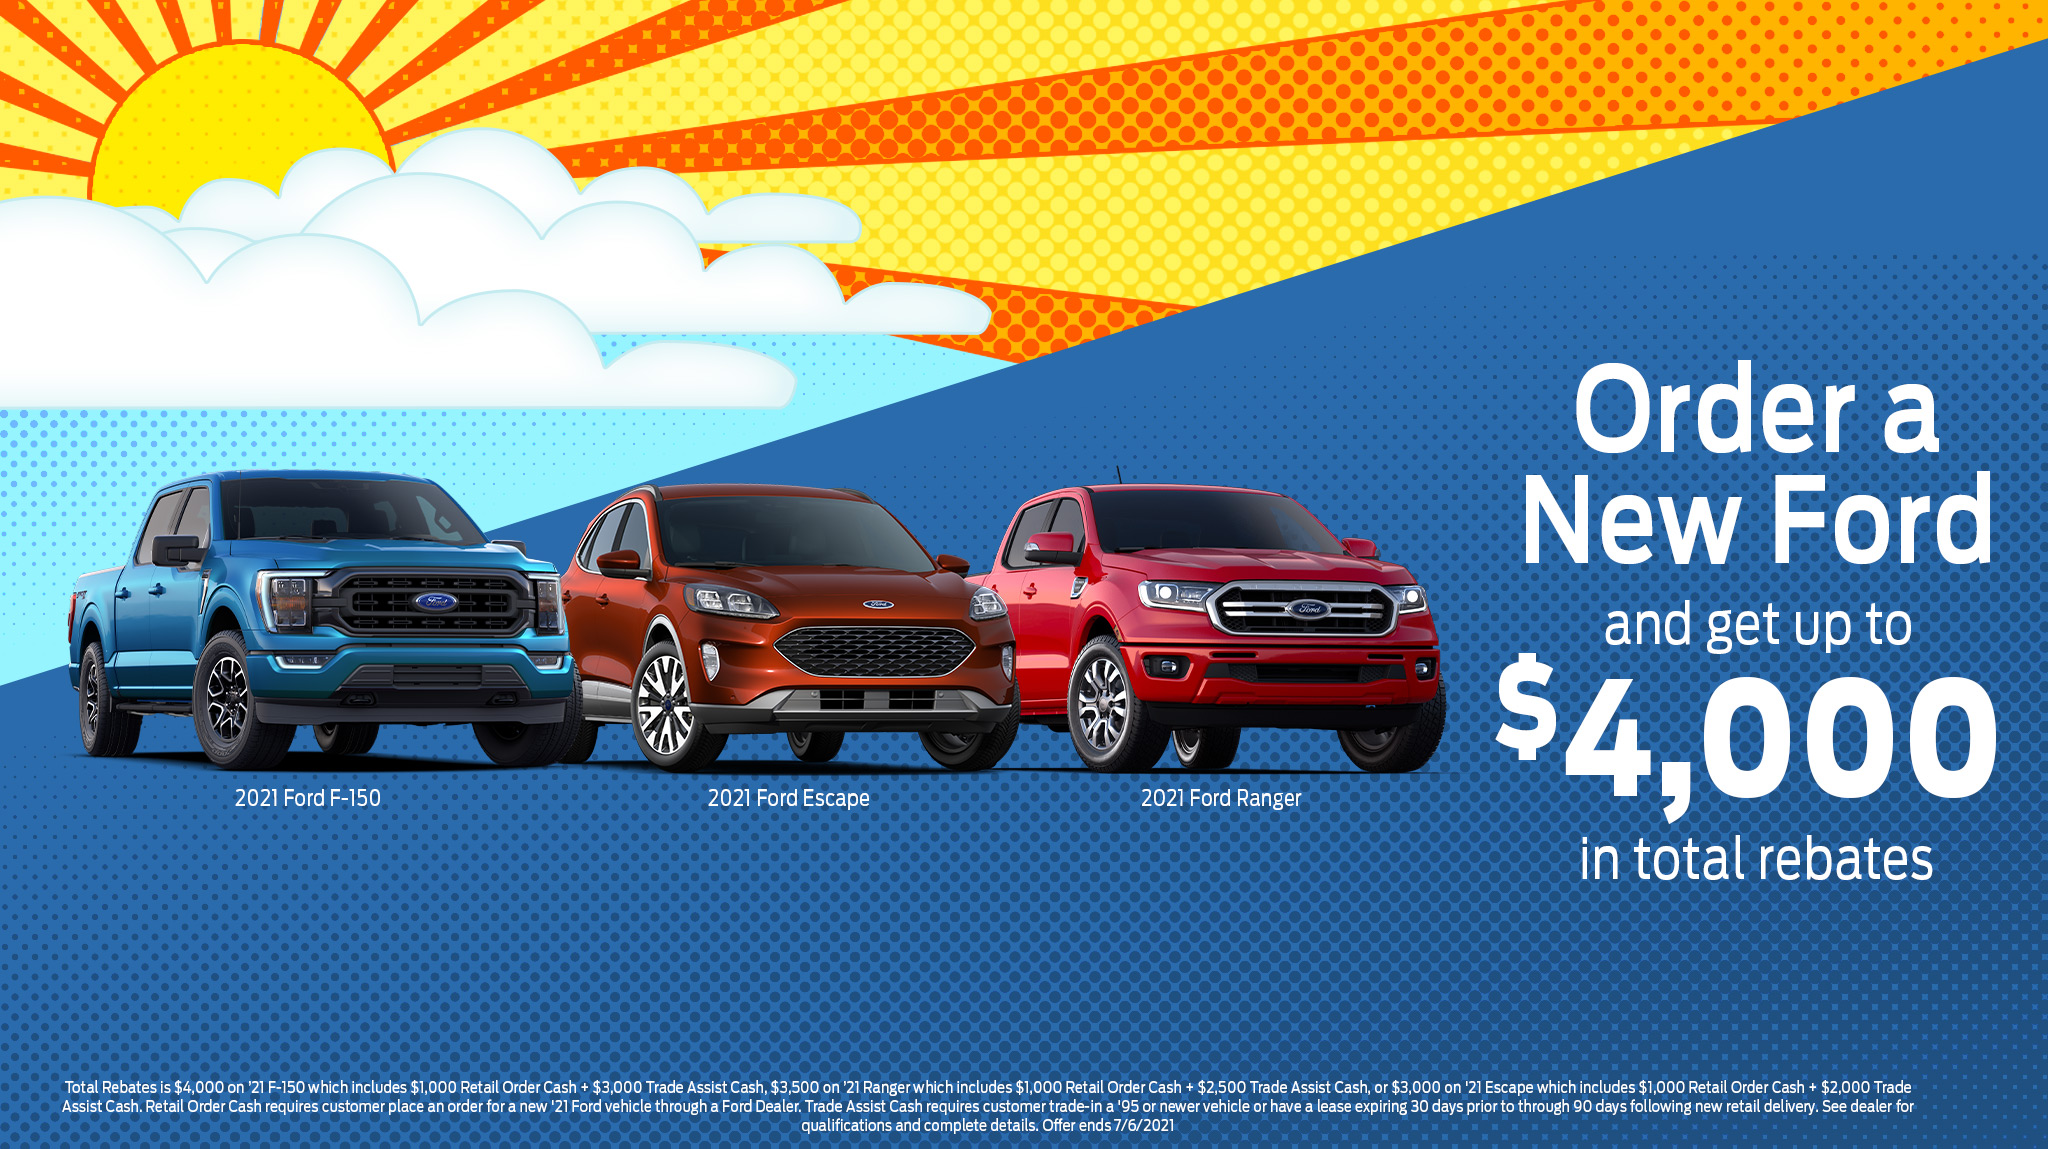 Order a new Ford - Special